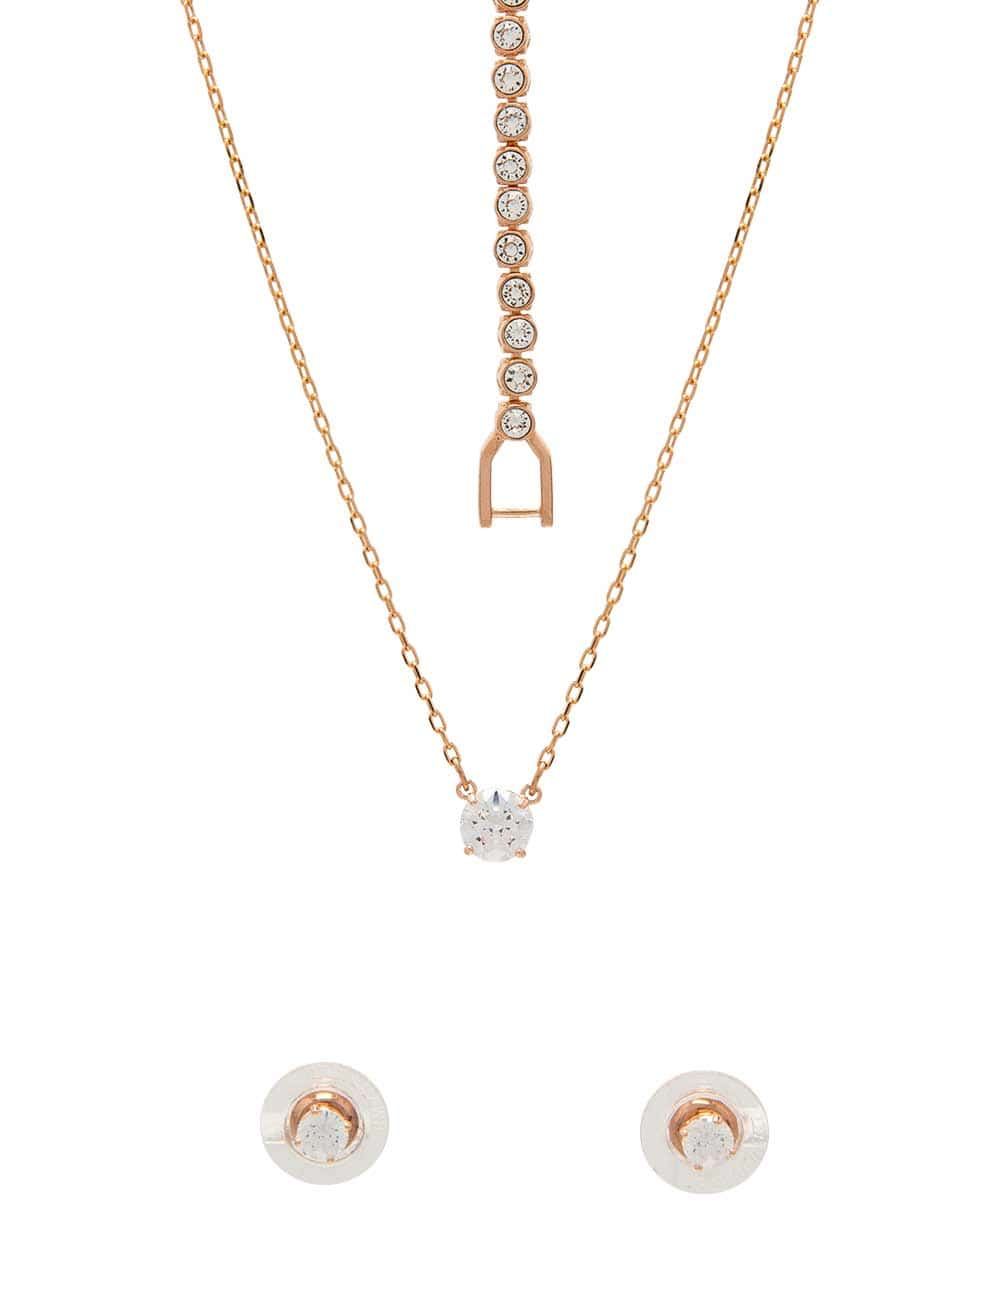 Amazing necklaces to attract this season 6